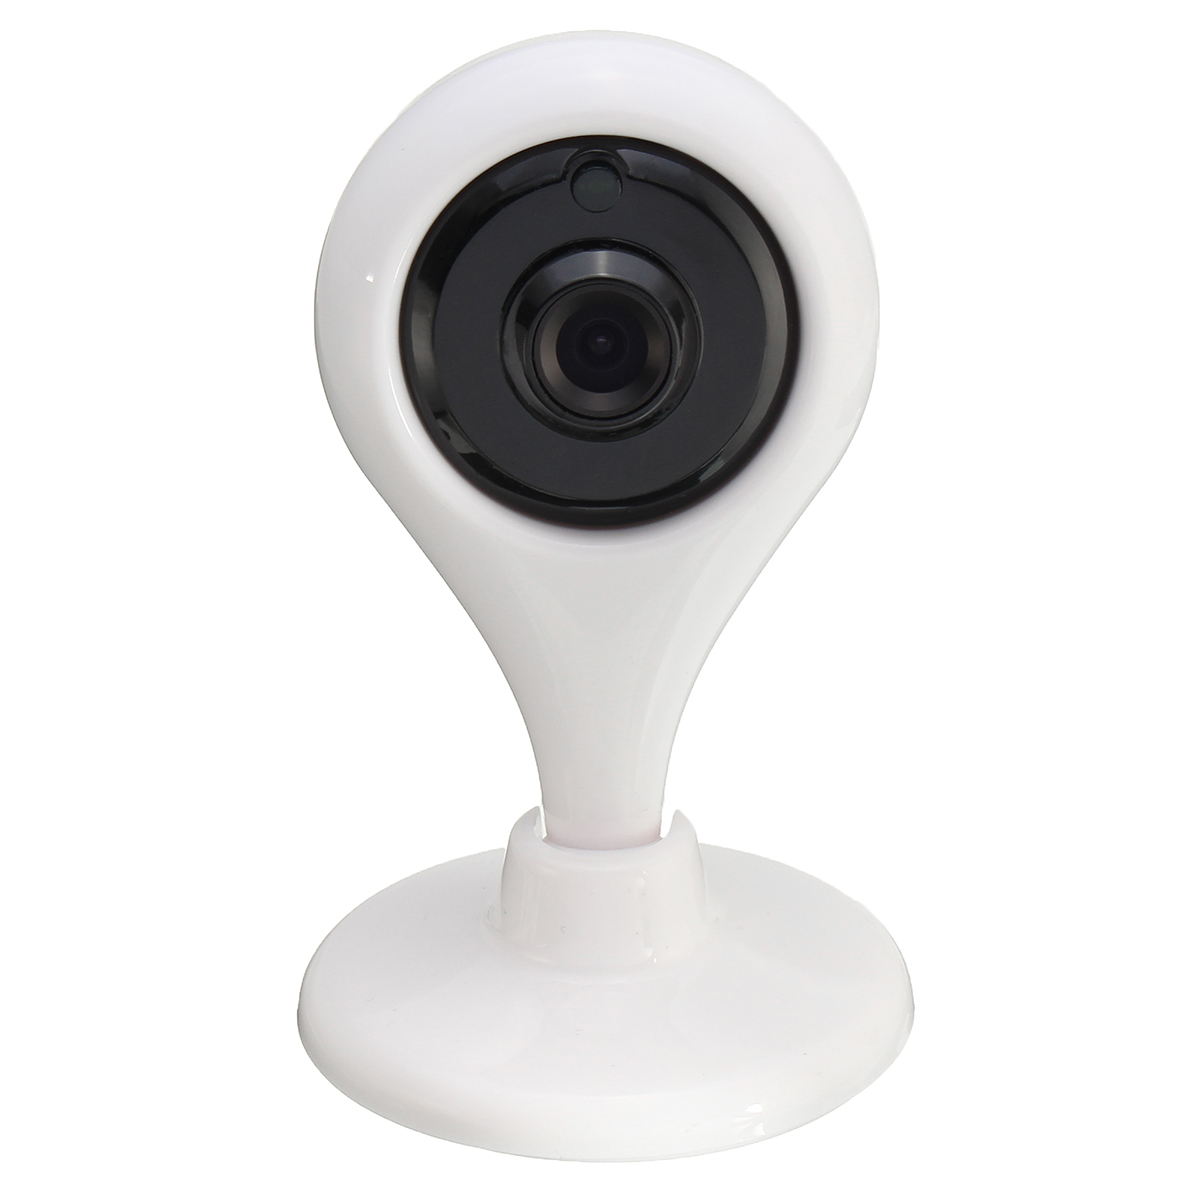 NEW Smart HD 720P Wireless WIFI IP Camera Outdoor Security Alarm Night Vision